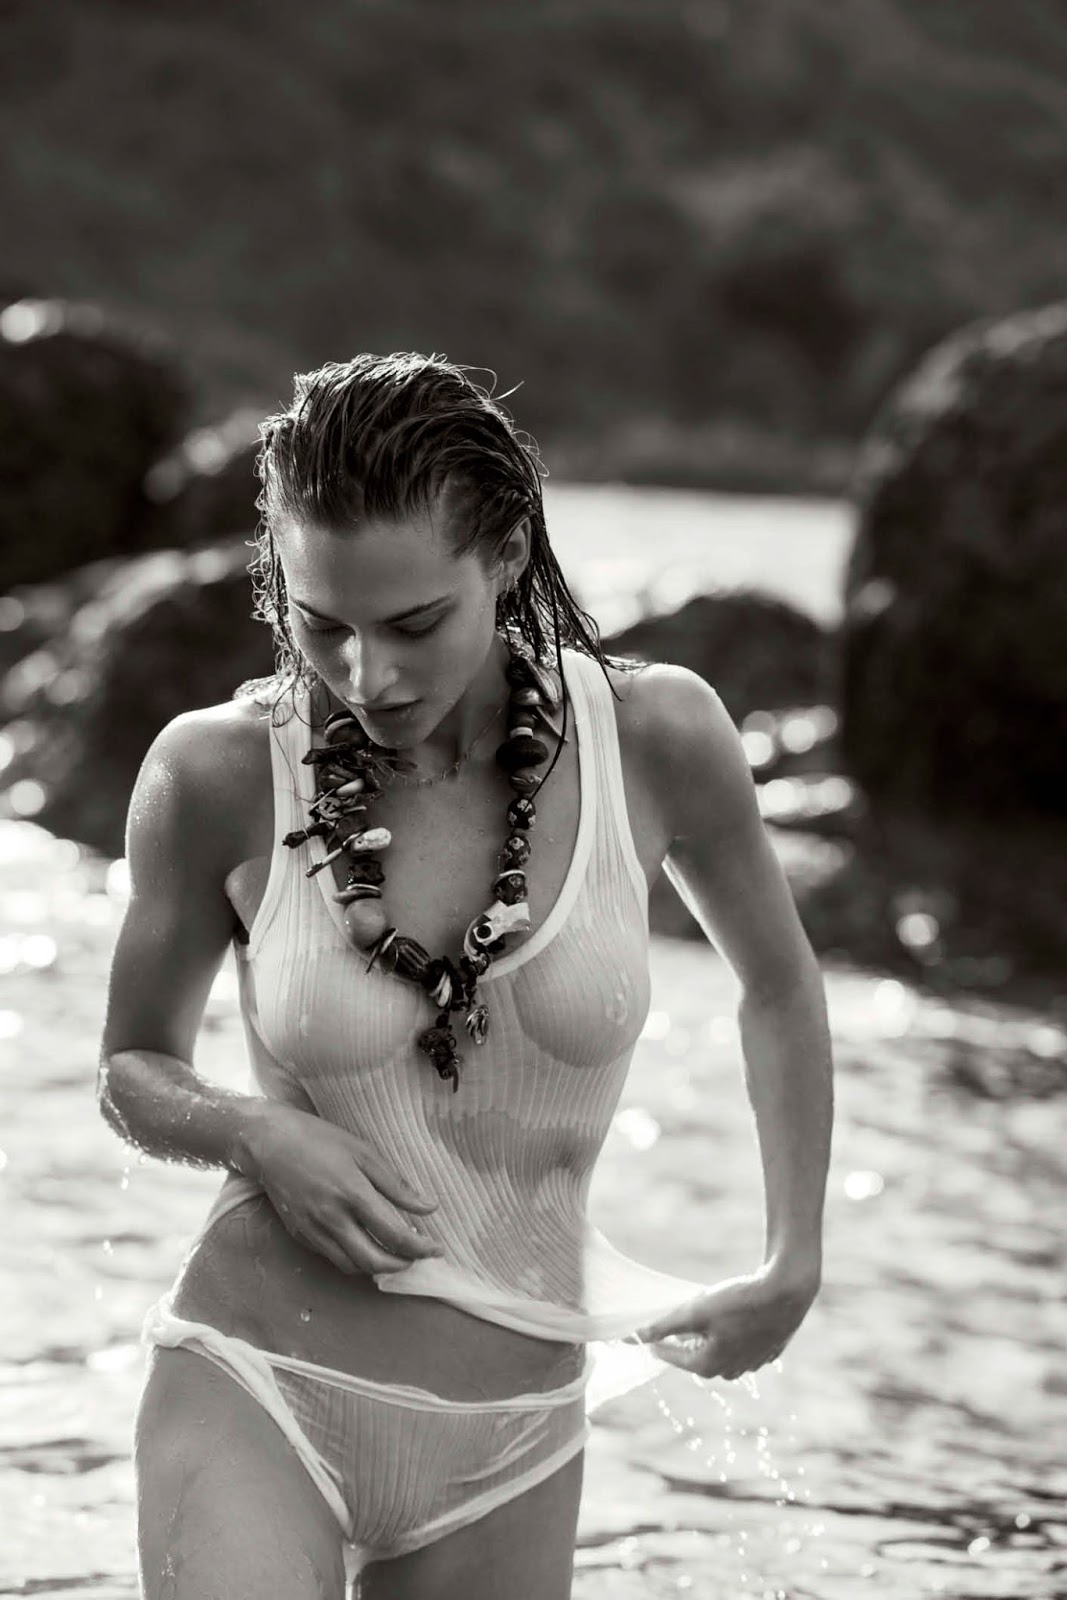 Lana Zakocela by Gilles Bensimon for Maxim